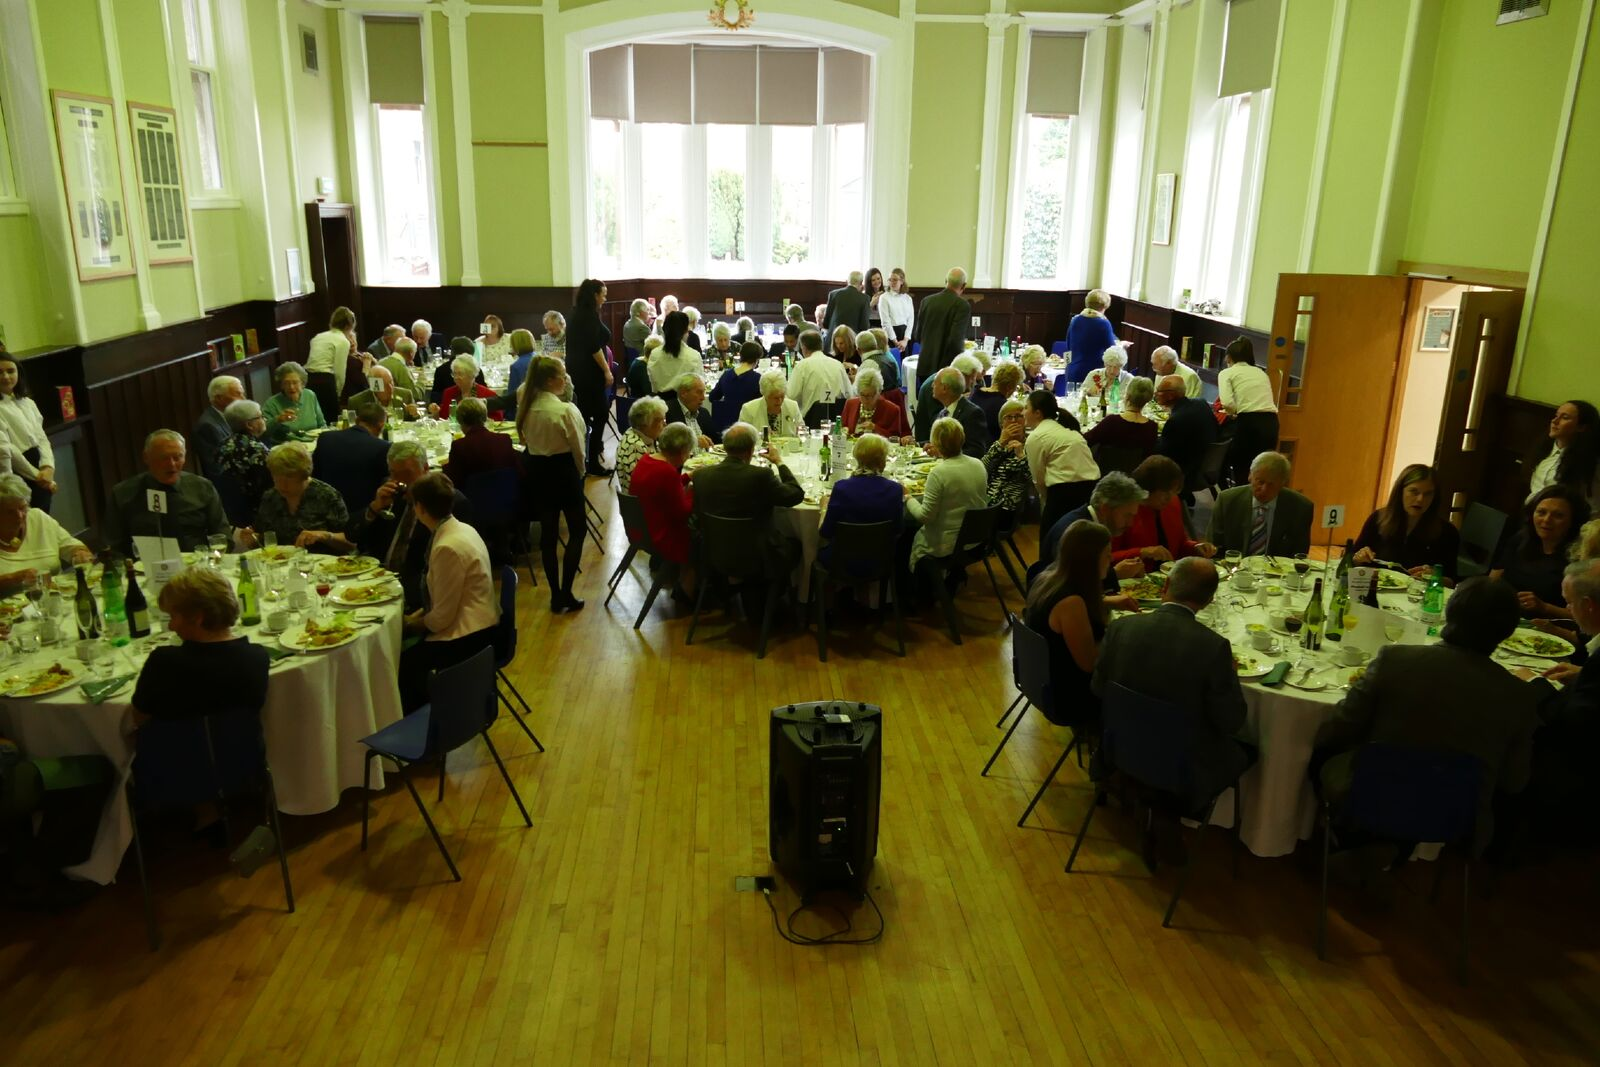 St Columba's School Charity Musical Lunch